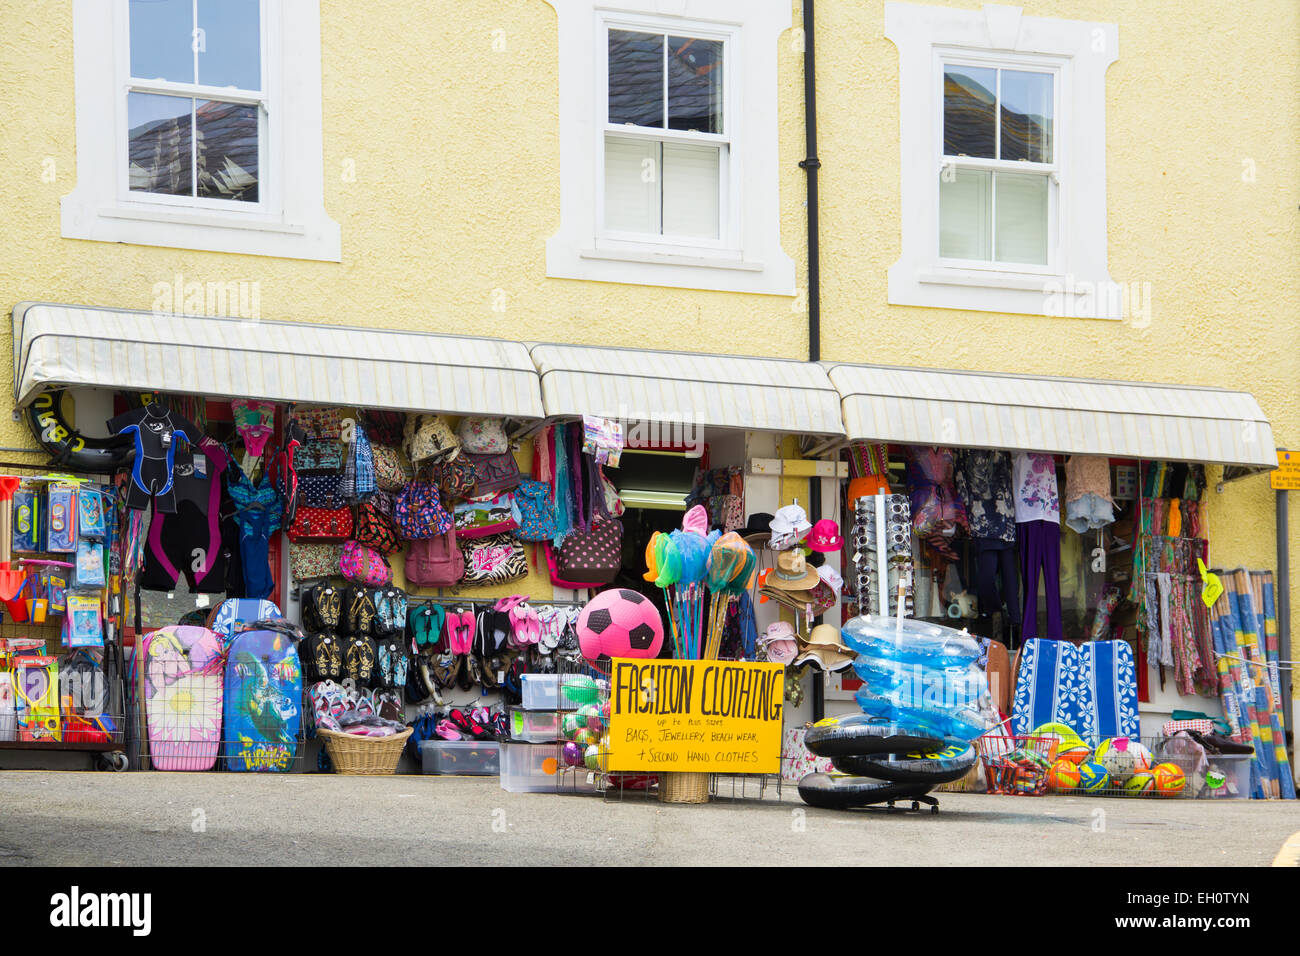 Front-of-shop display at unnamed fancy goods and clothes shop on White Street in New Quay, Ceredigion, Wales. - Stock Image